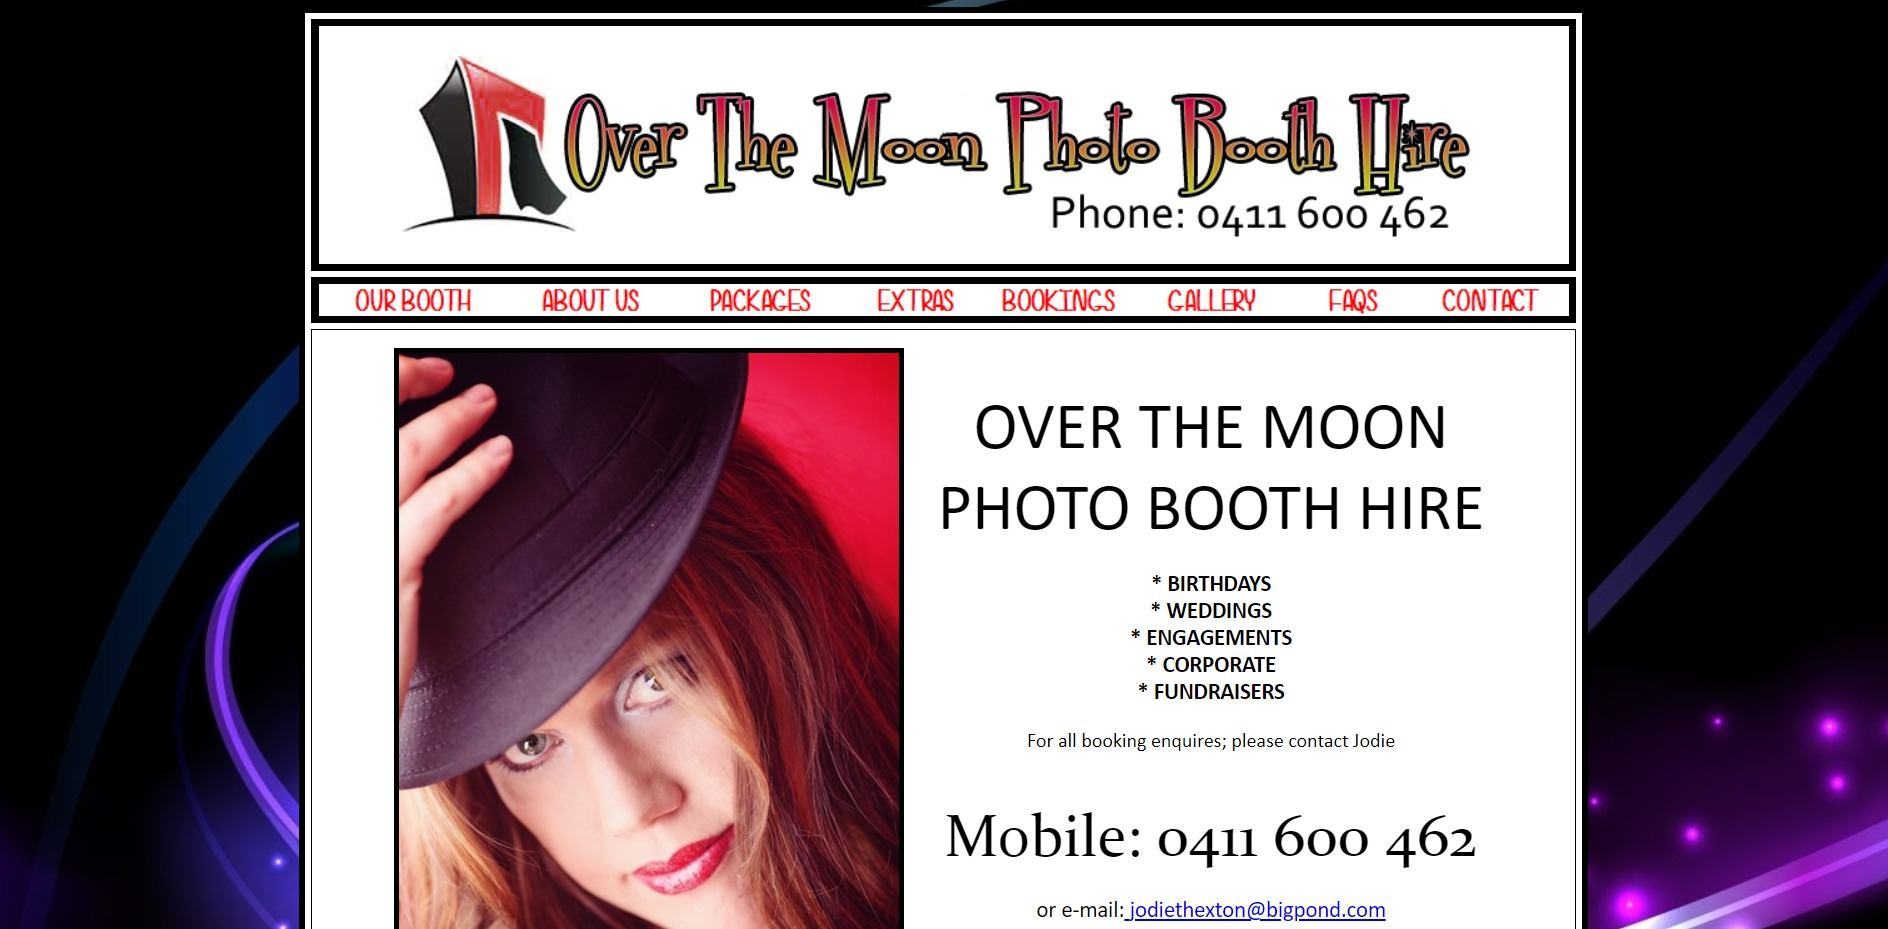 Over The Moon Photo Booth Hire